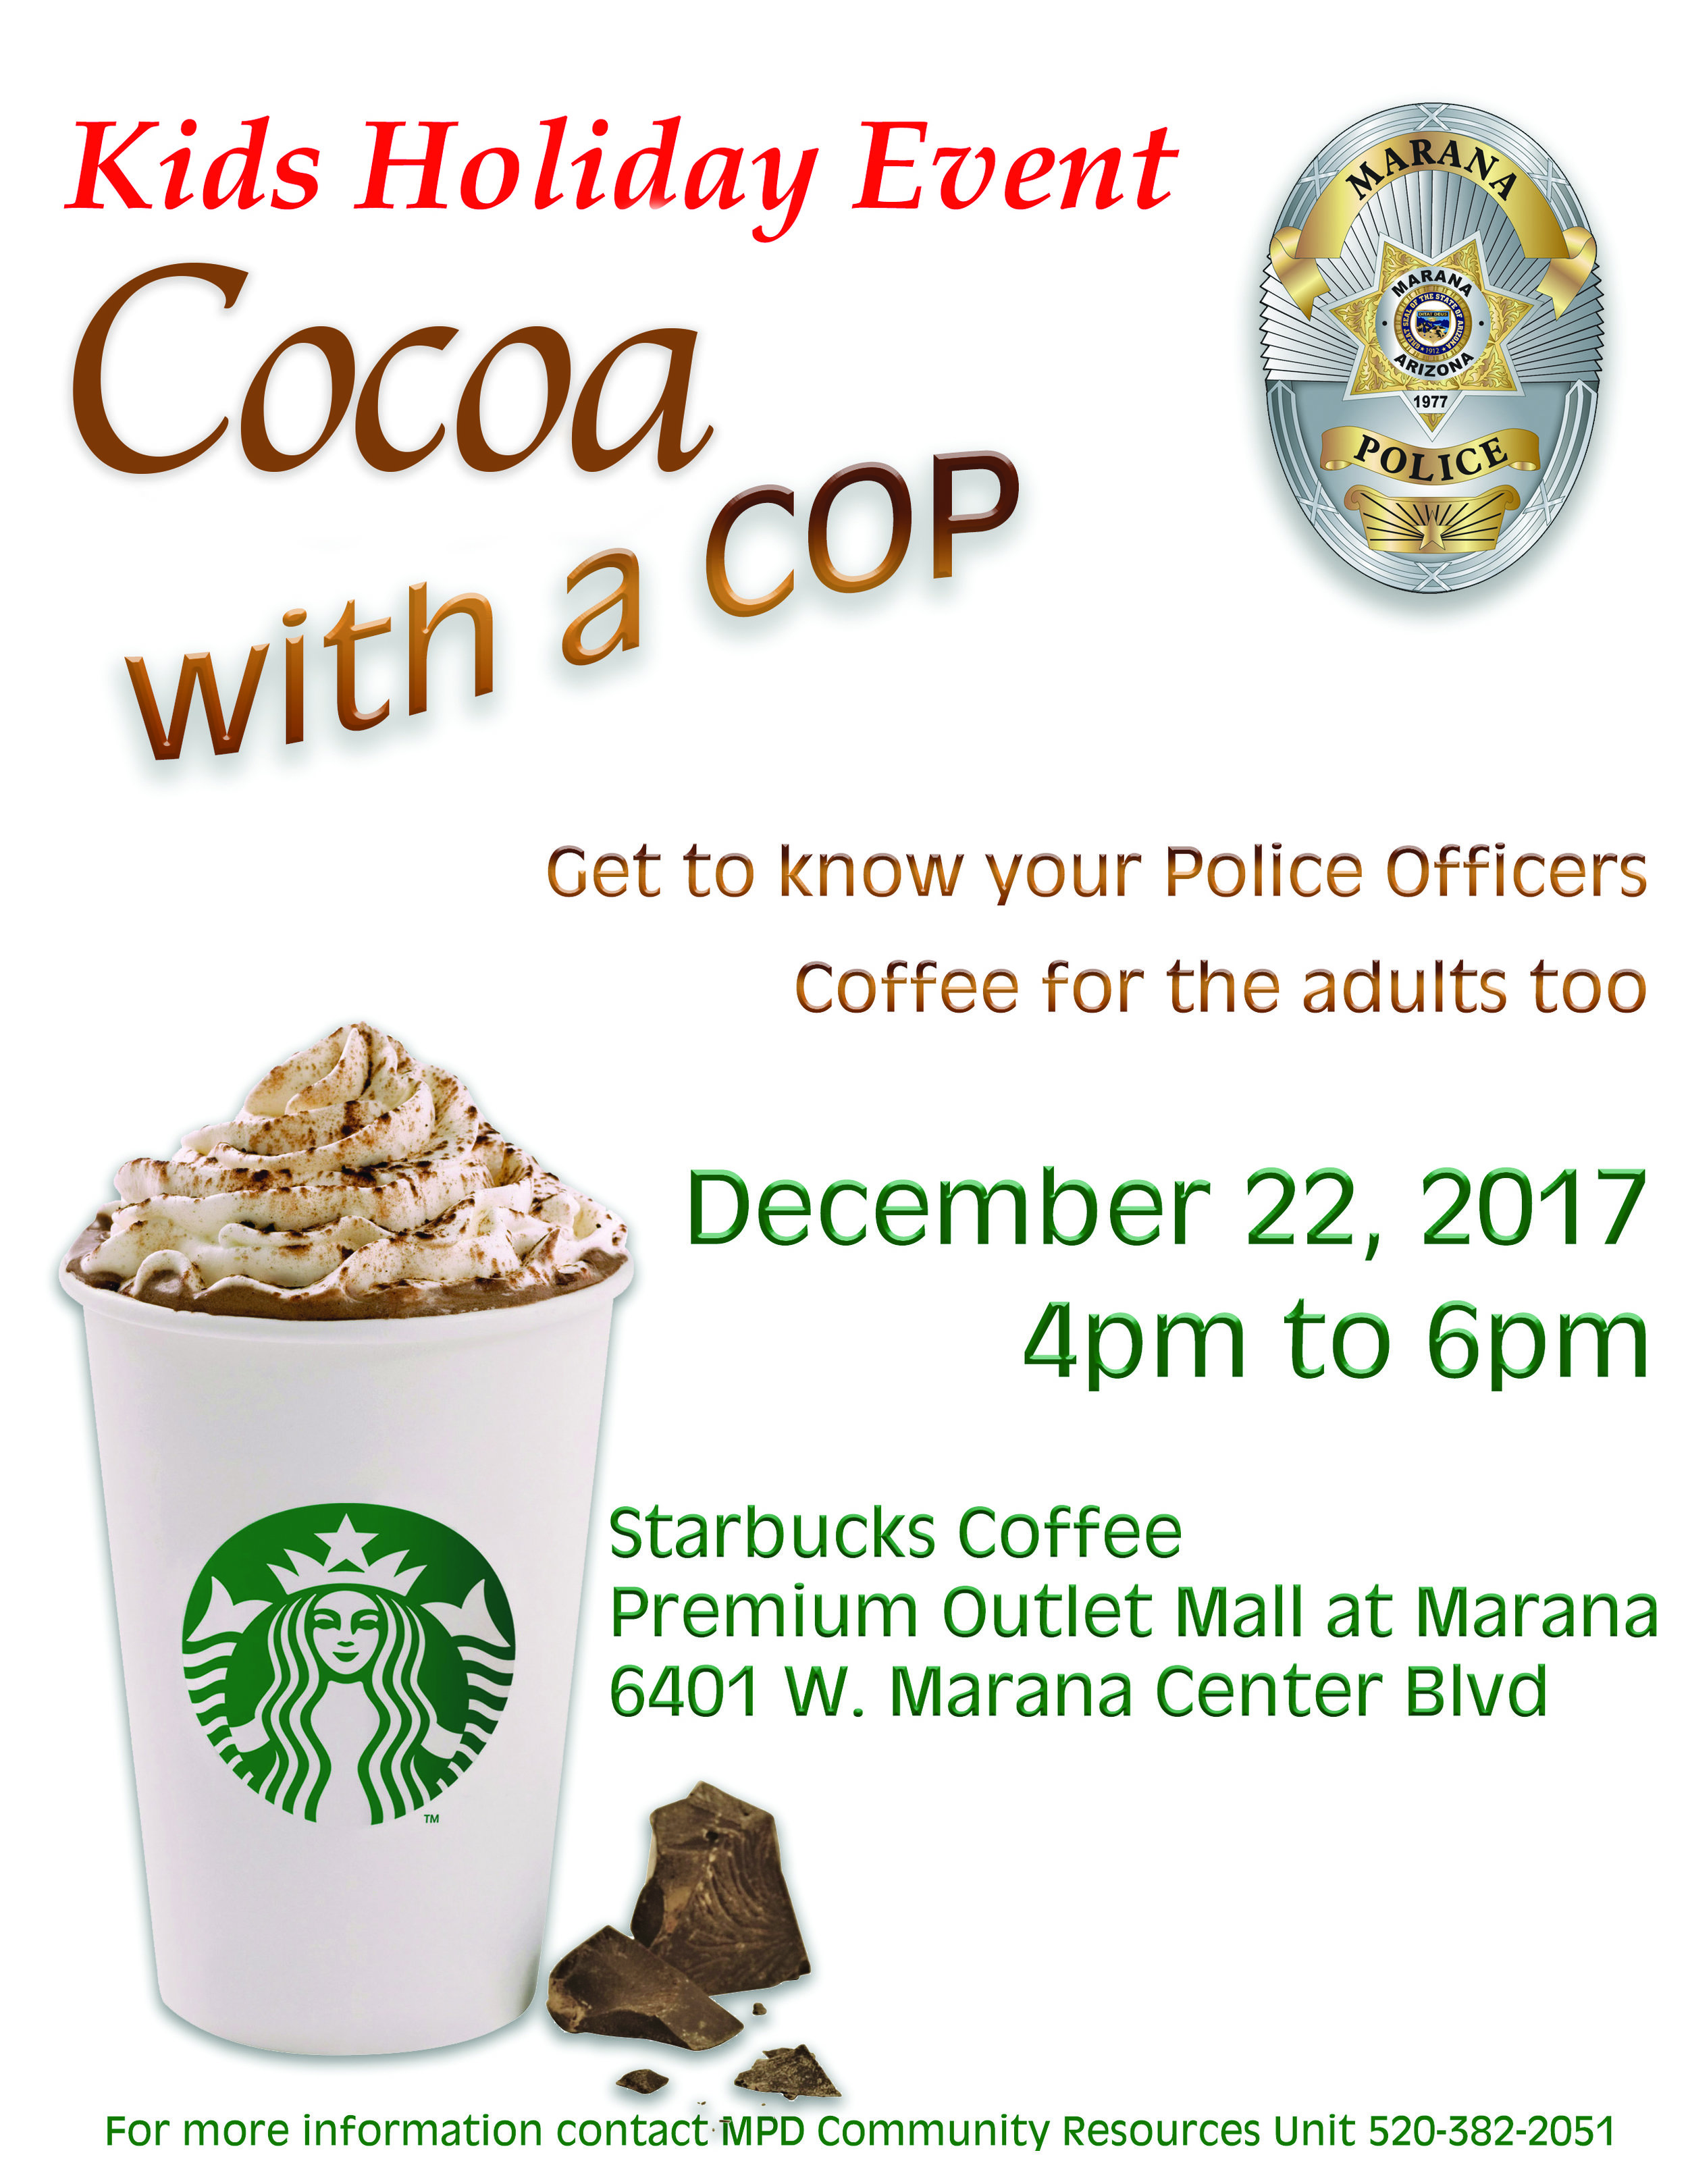 Cocoa with cops.jpg